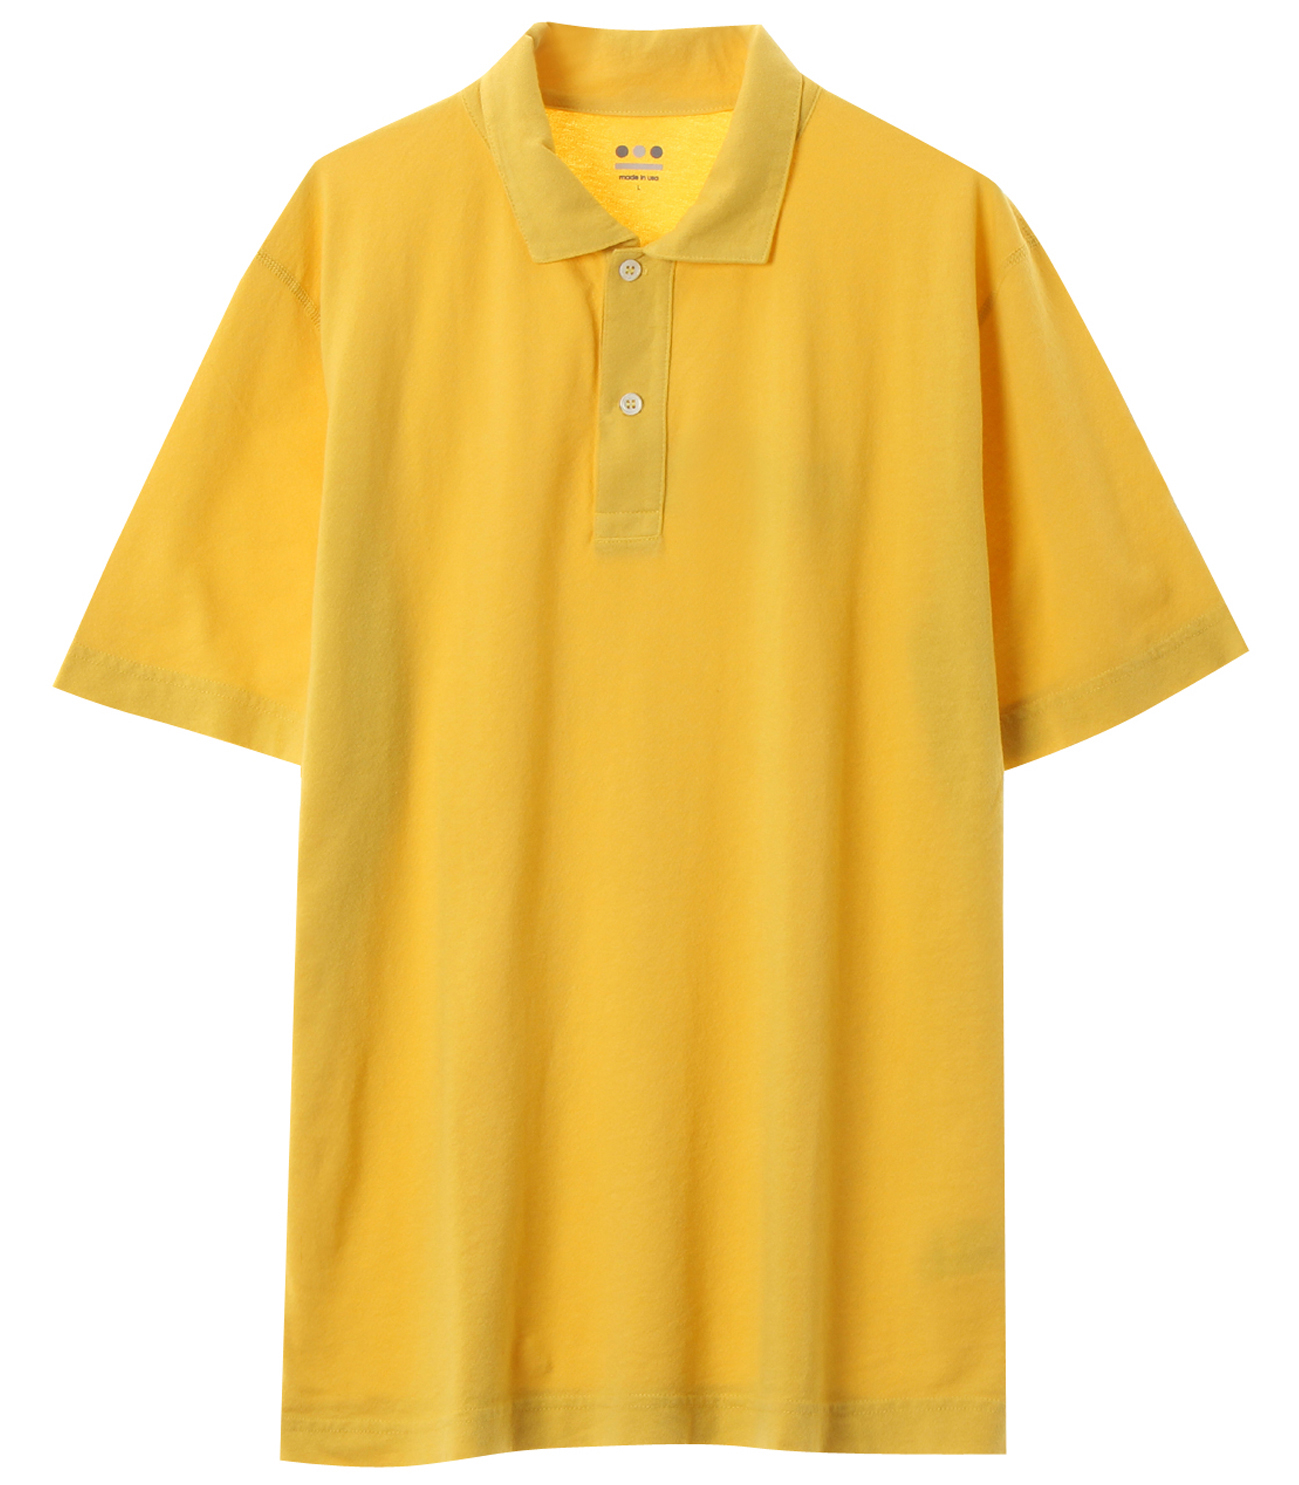 short slv polo 詳細画像 sunflower 1